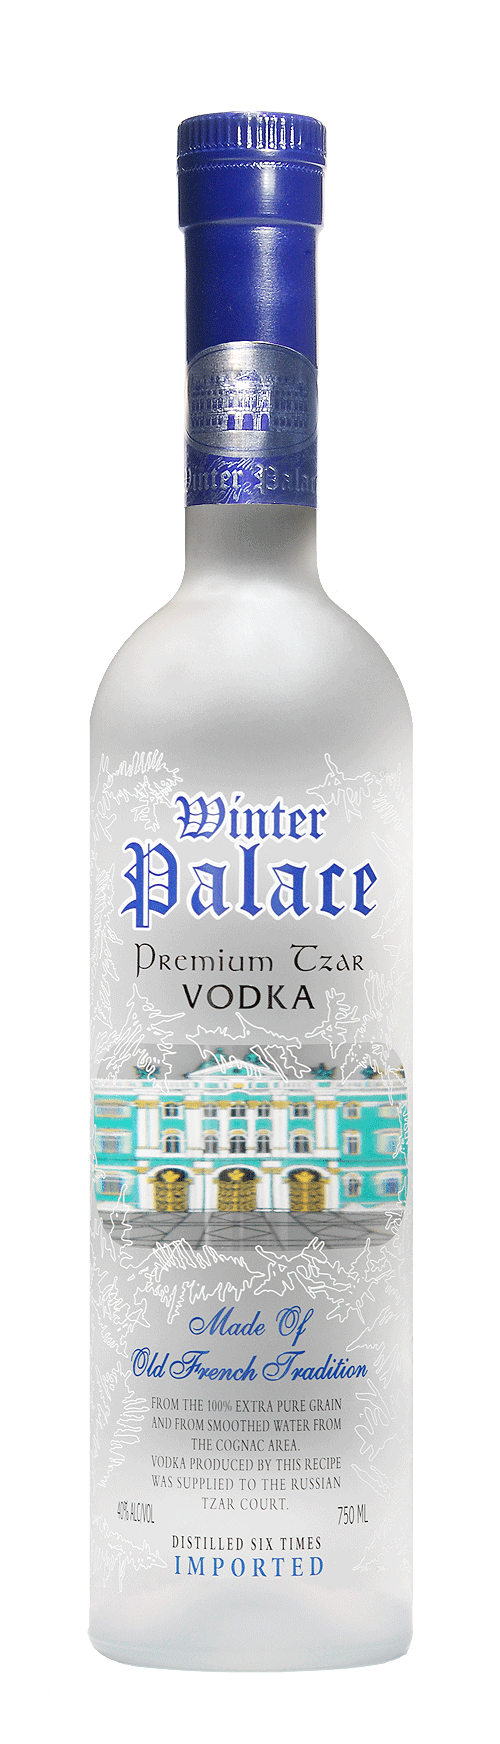 Winter Palace Vodka Vodka from Russian PD | Alcohol | Pinterest ...